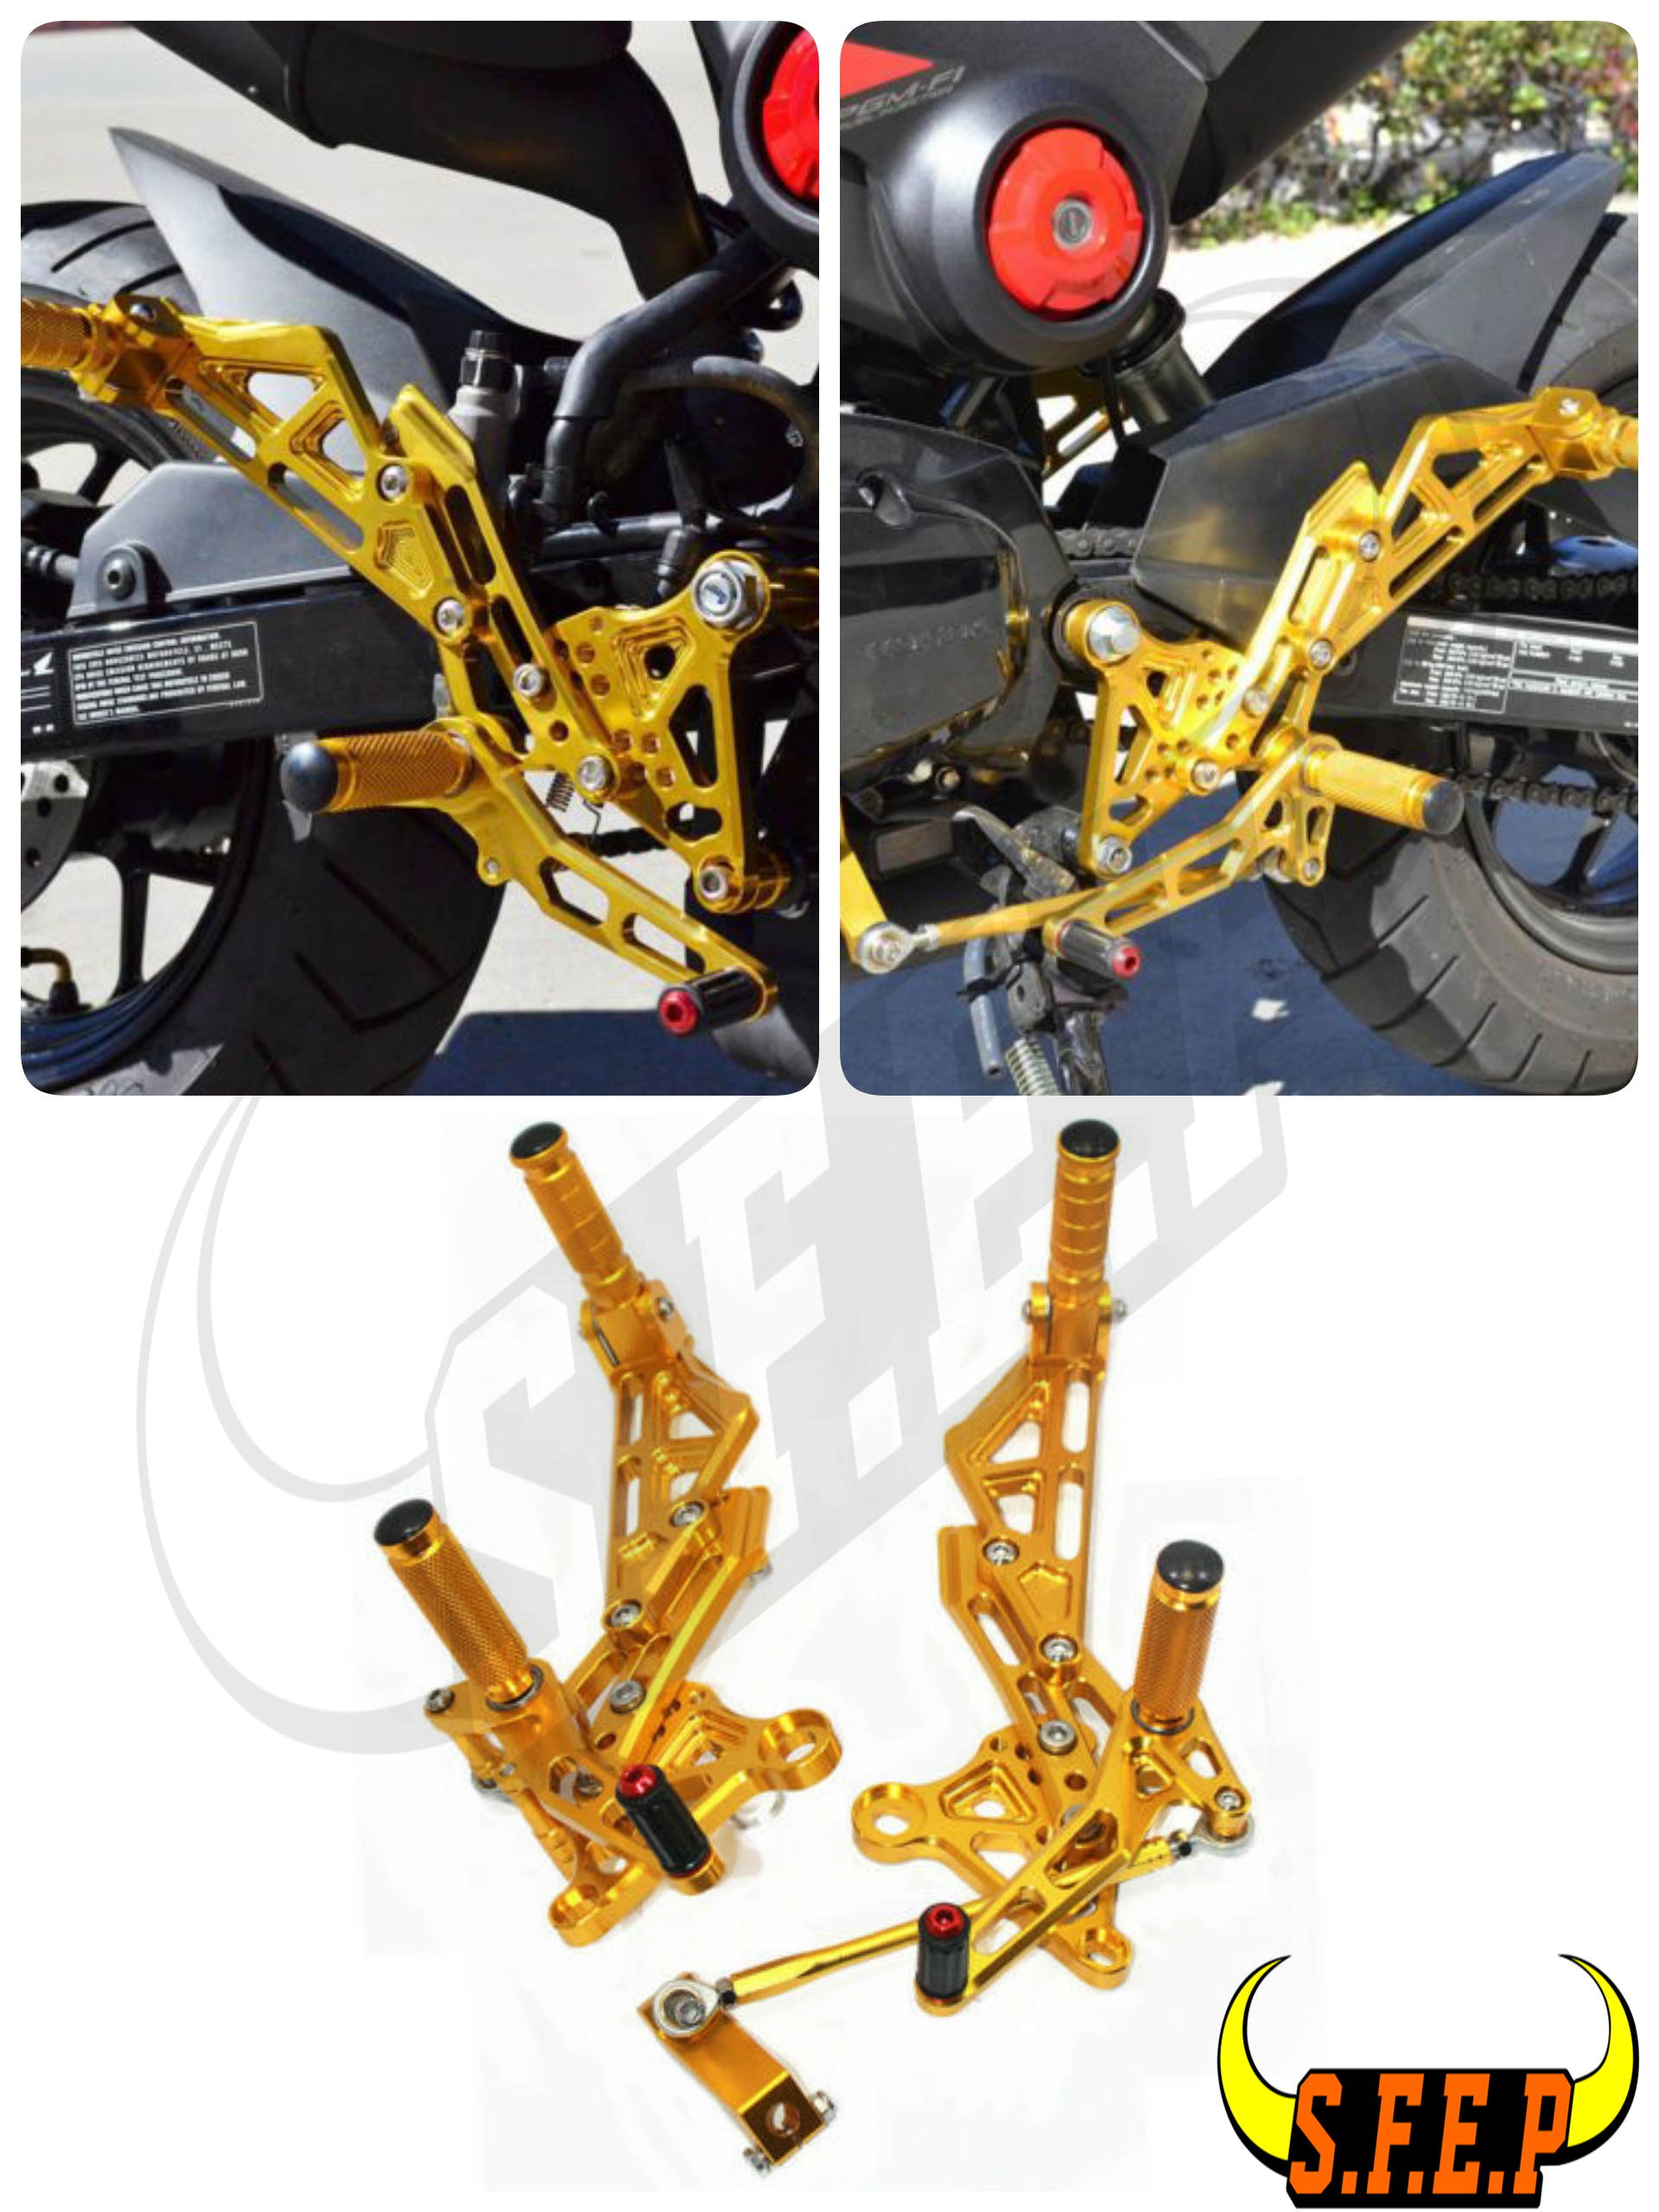 CNC Adjustable <font><b>Rearset</b></font> Foot Pegs Rest Pedal For HONDA GROM <font><b>MSX125</b></font> MSX125SF image